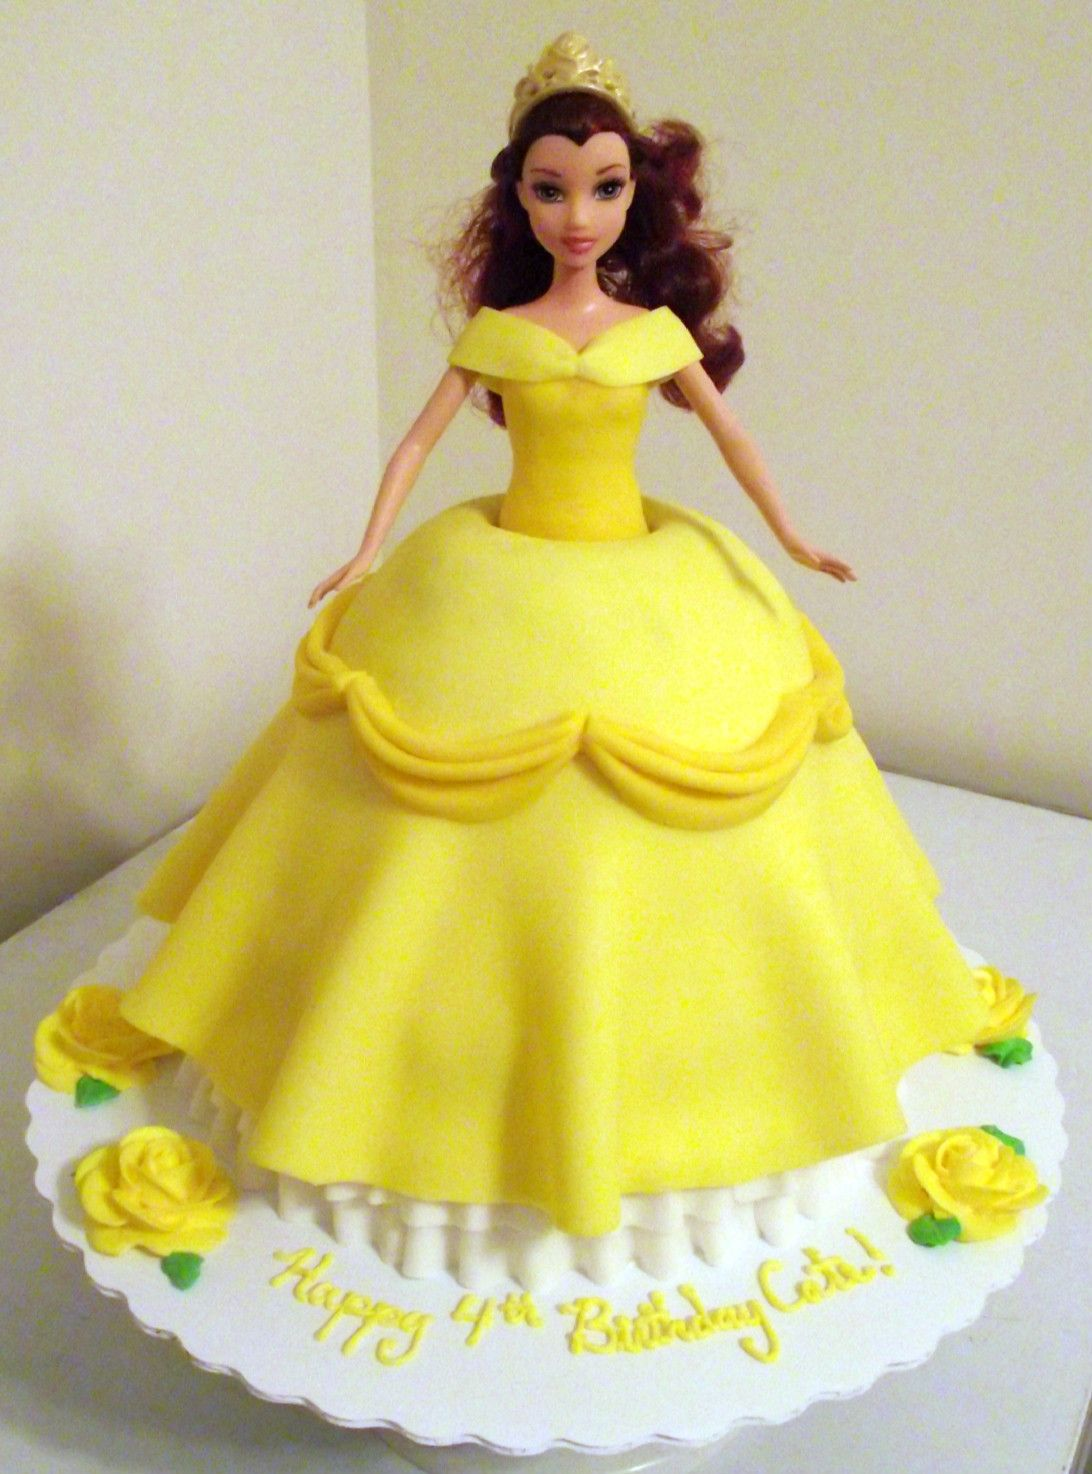 Cake Pics Of Doll : Belle Doll Cake by ayarel Marbled vanilla/chocolate cake ...